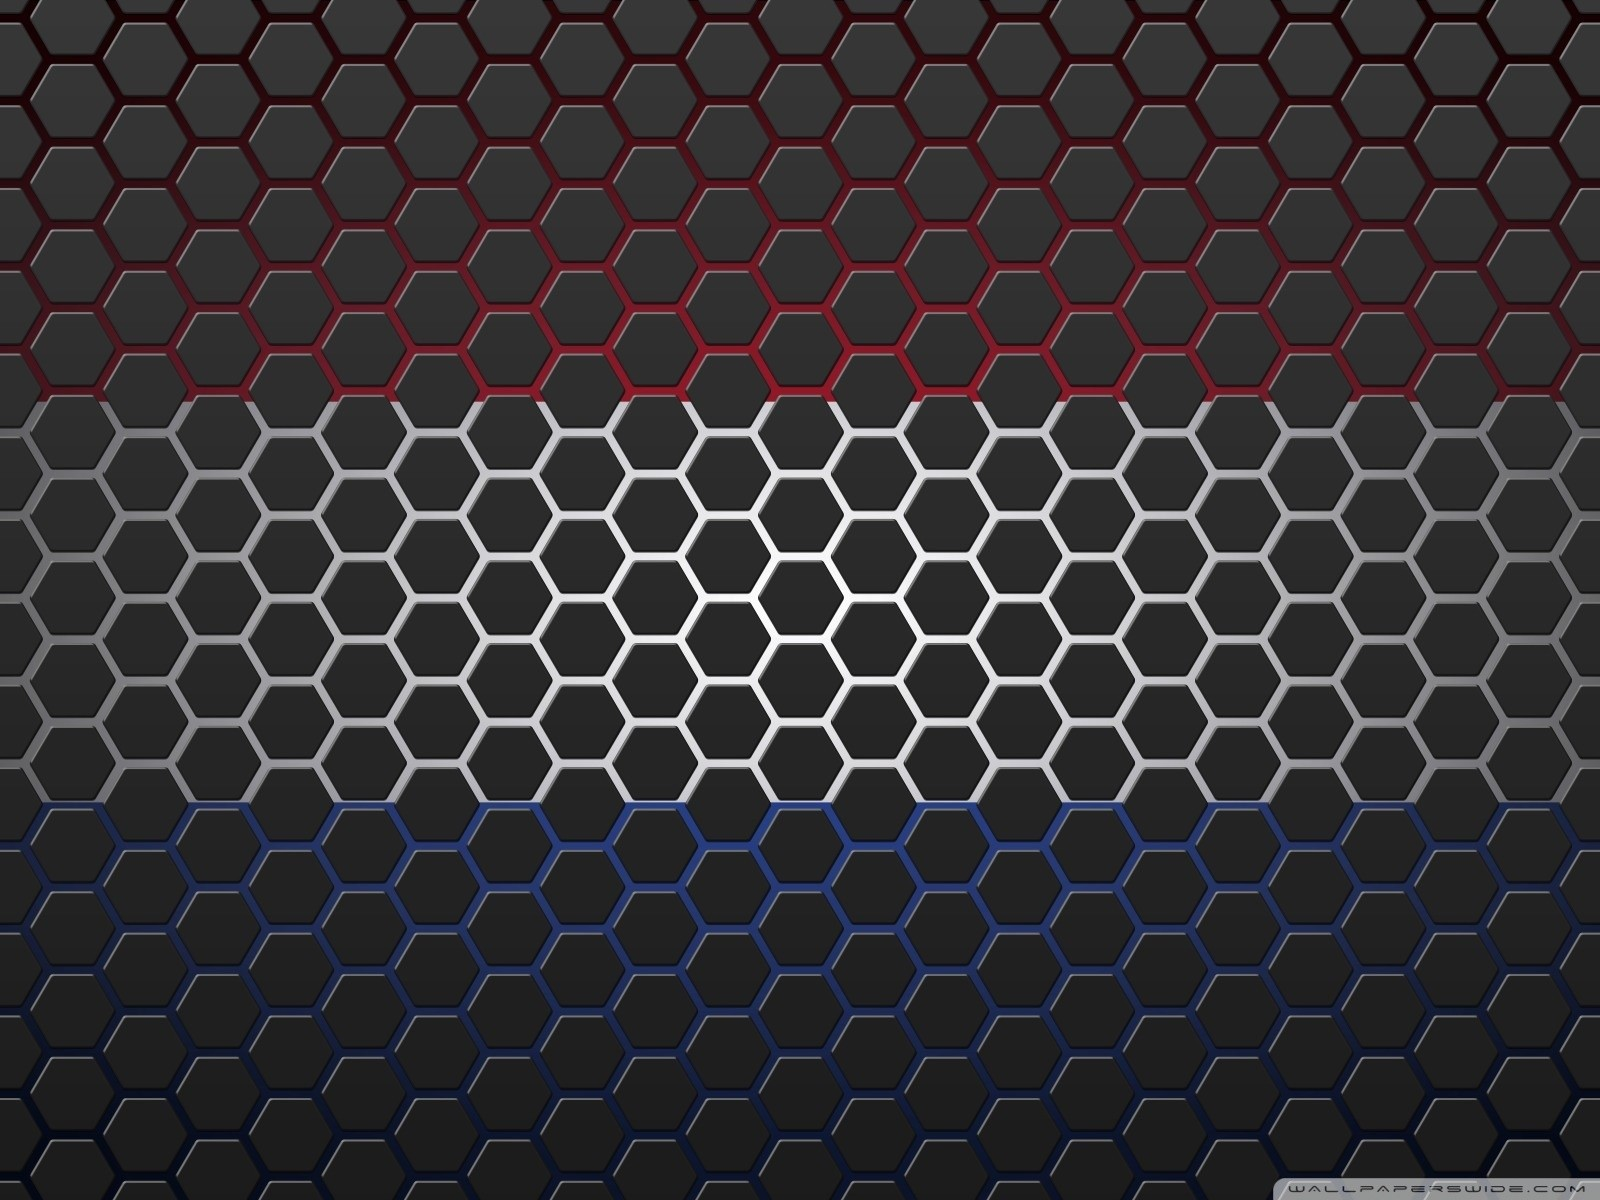 Free Netherlands Flag with Hexagons phone wallpaper by babytaz93